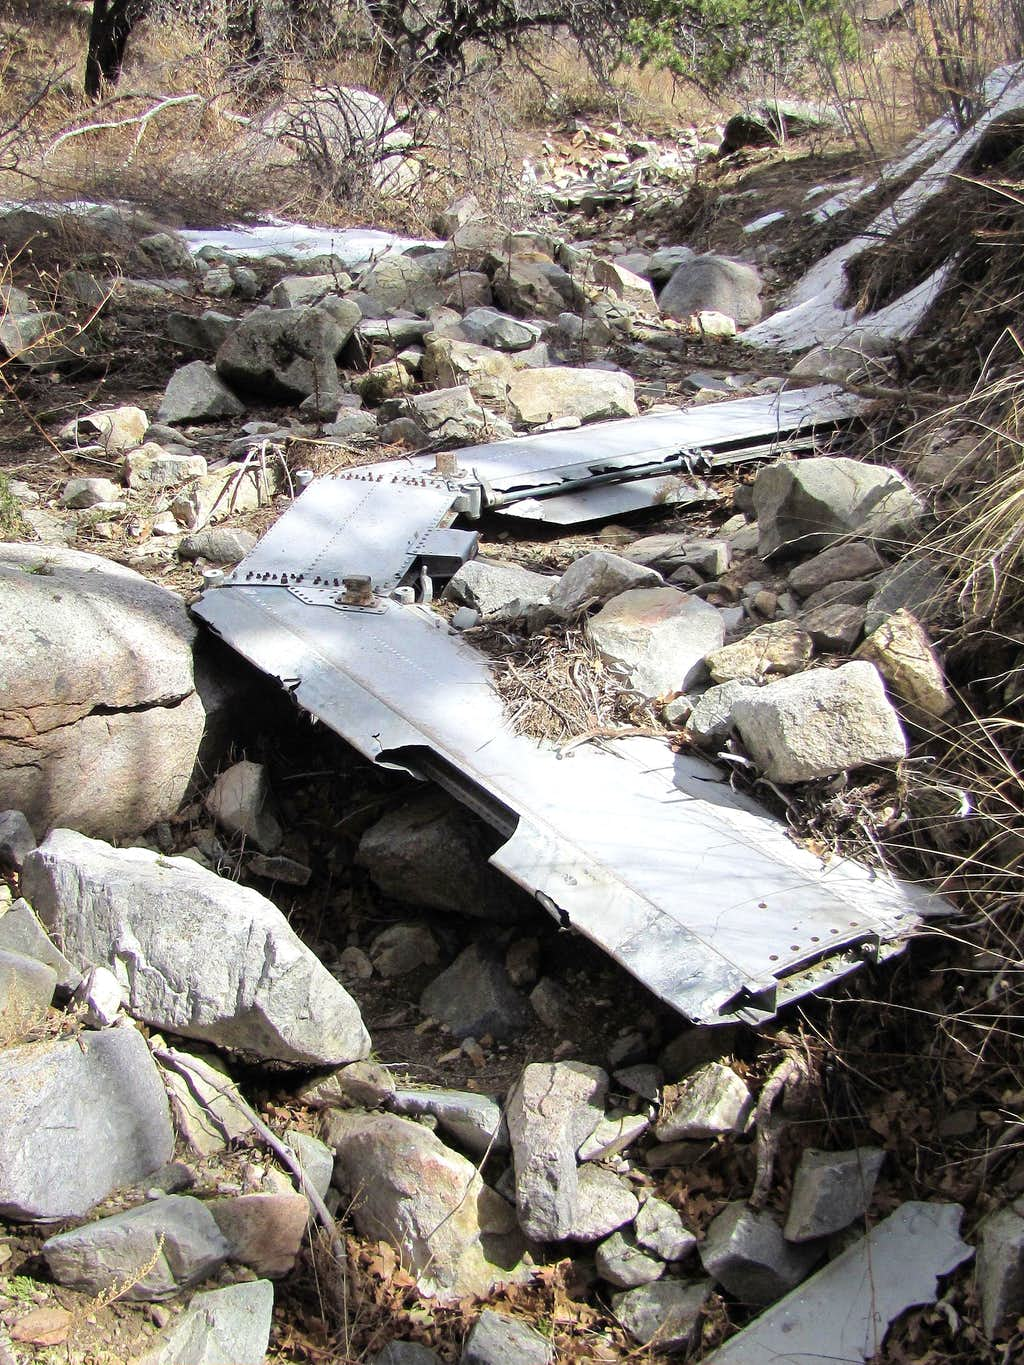 Remains of crashed airplane